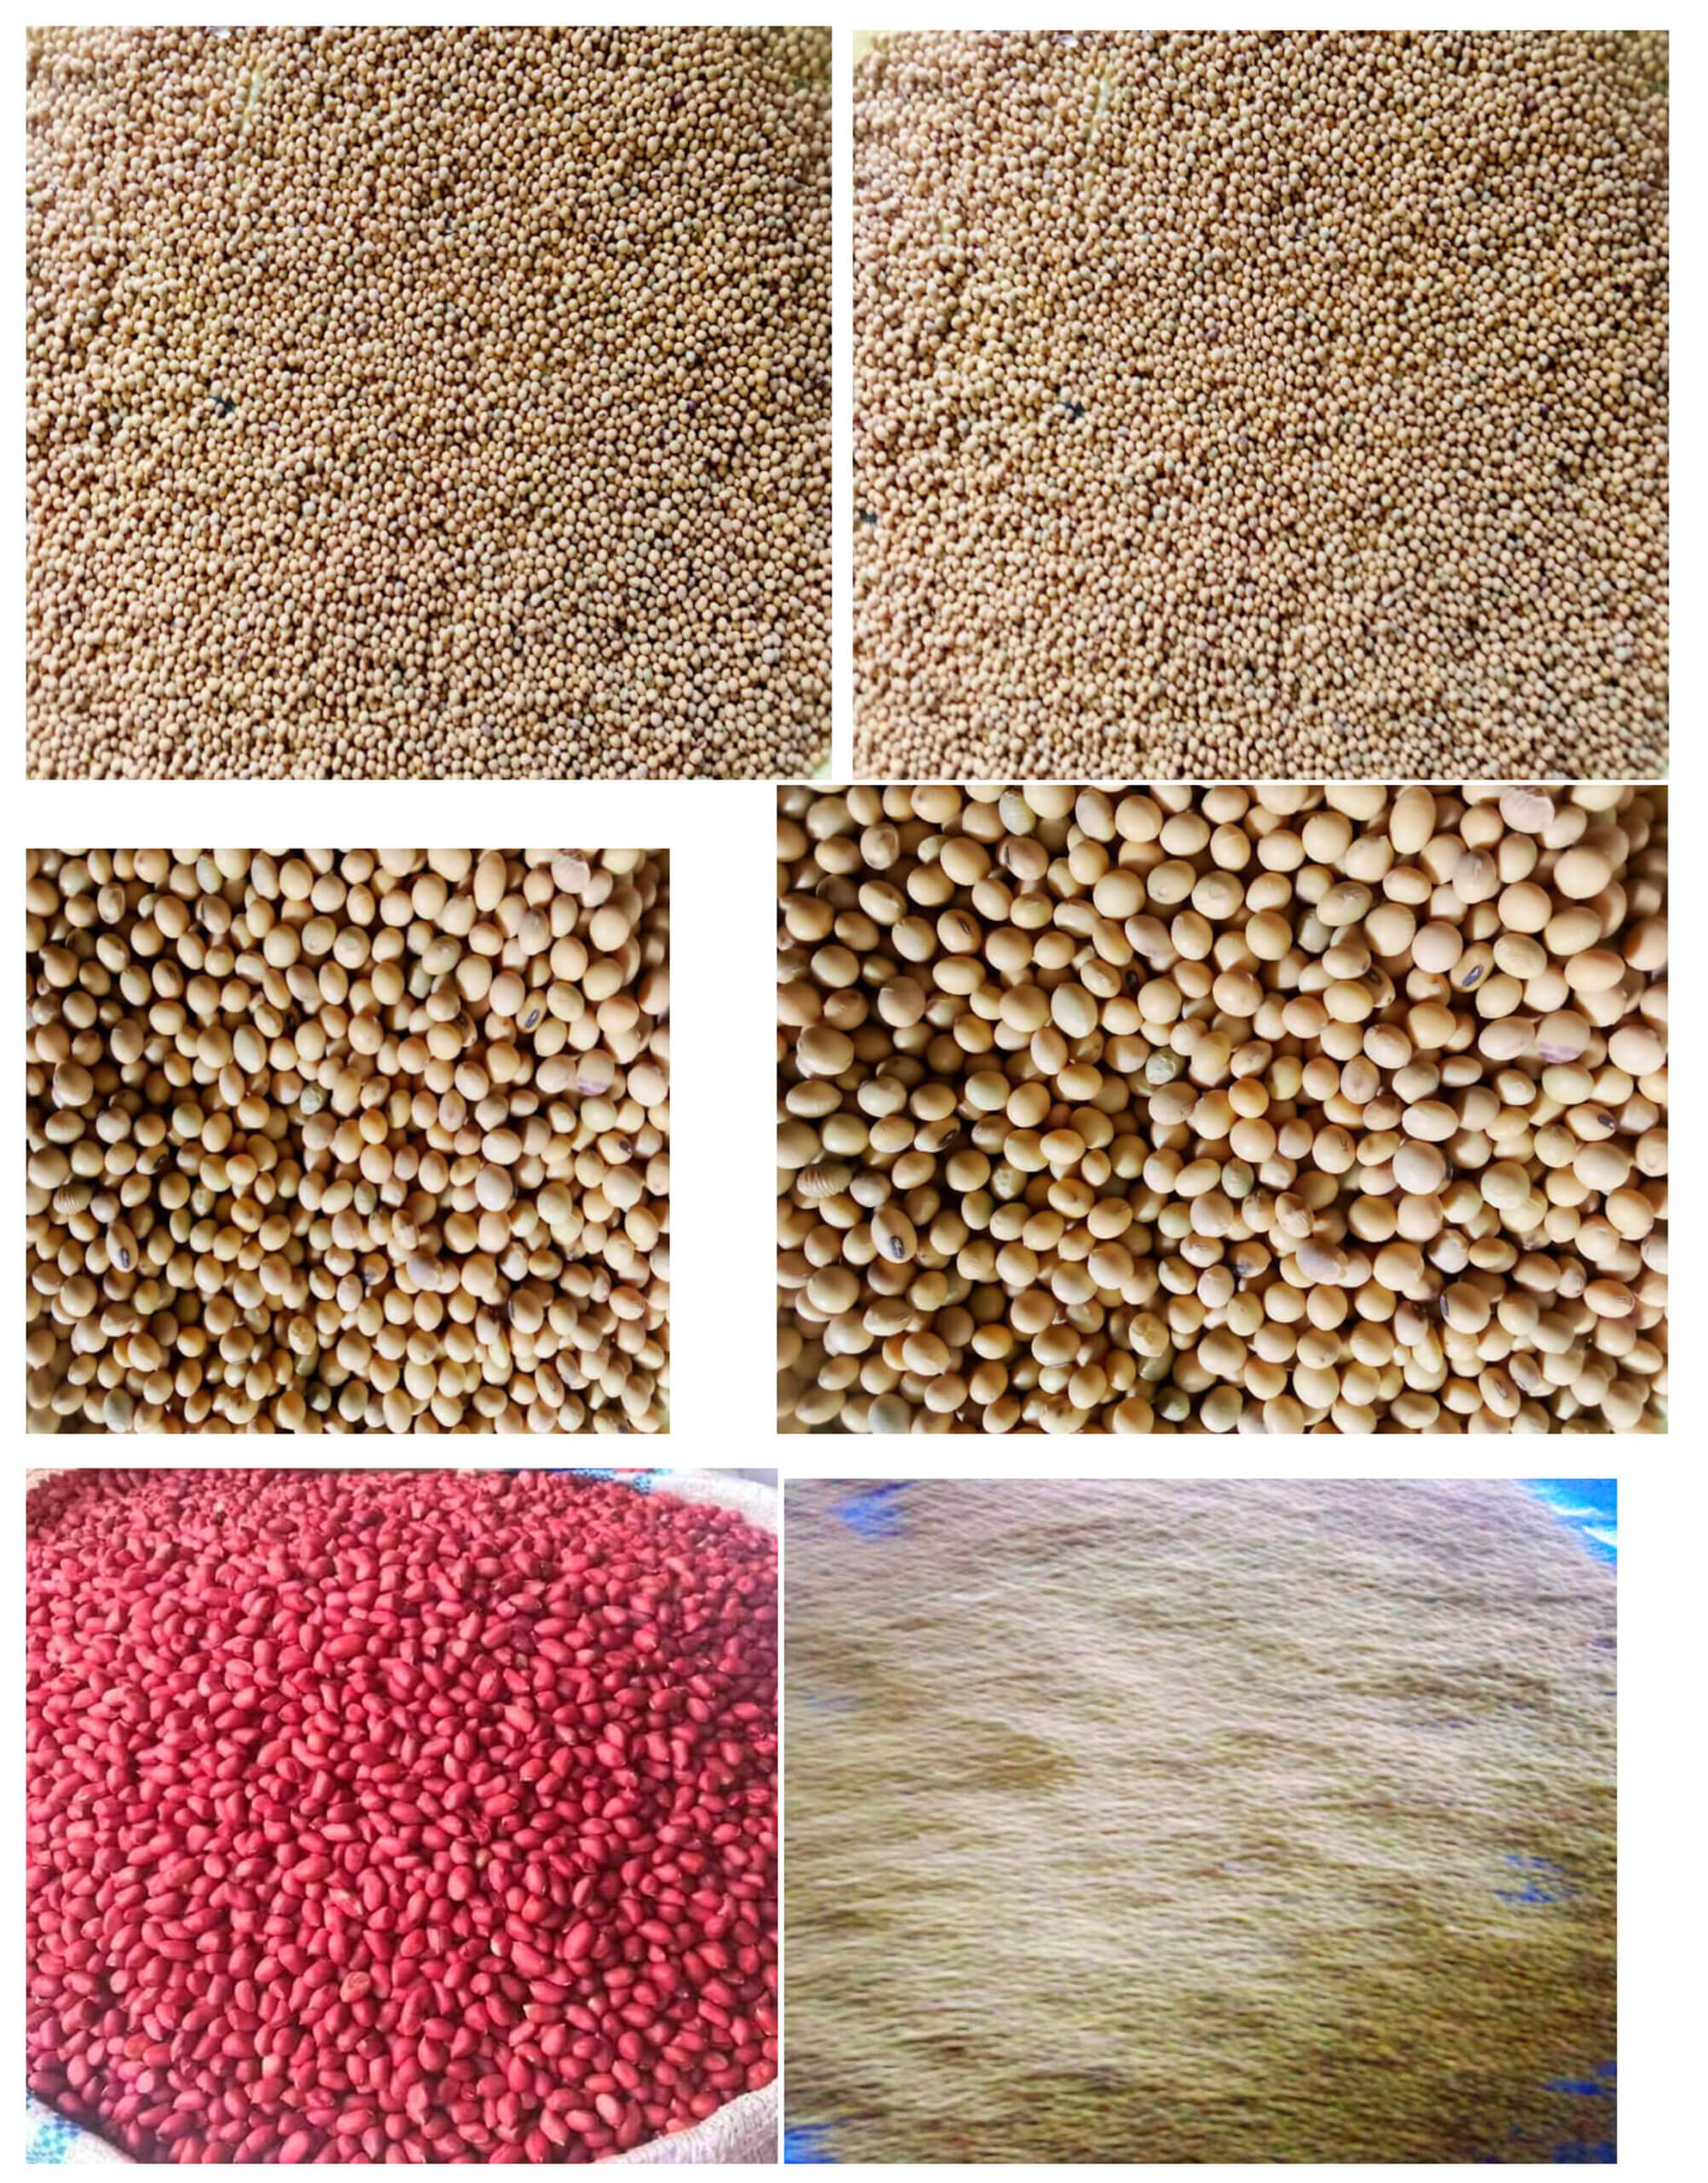 PRODUCE/ CEREALS FOR SALE